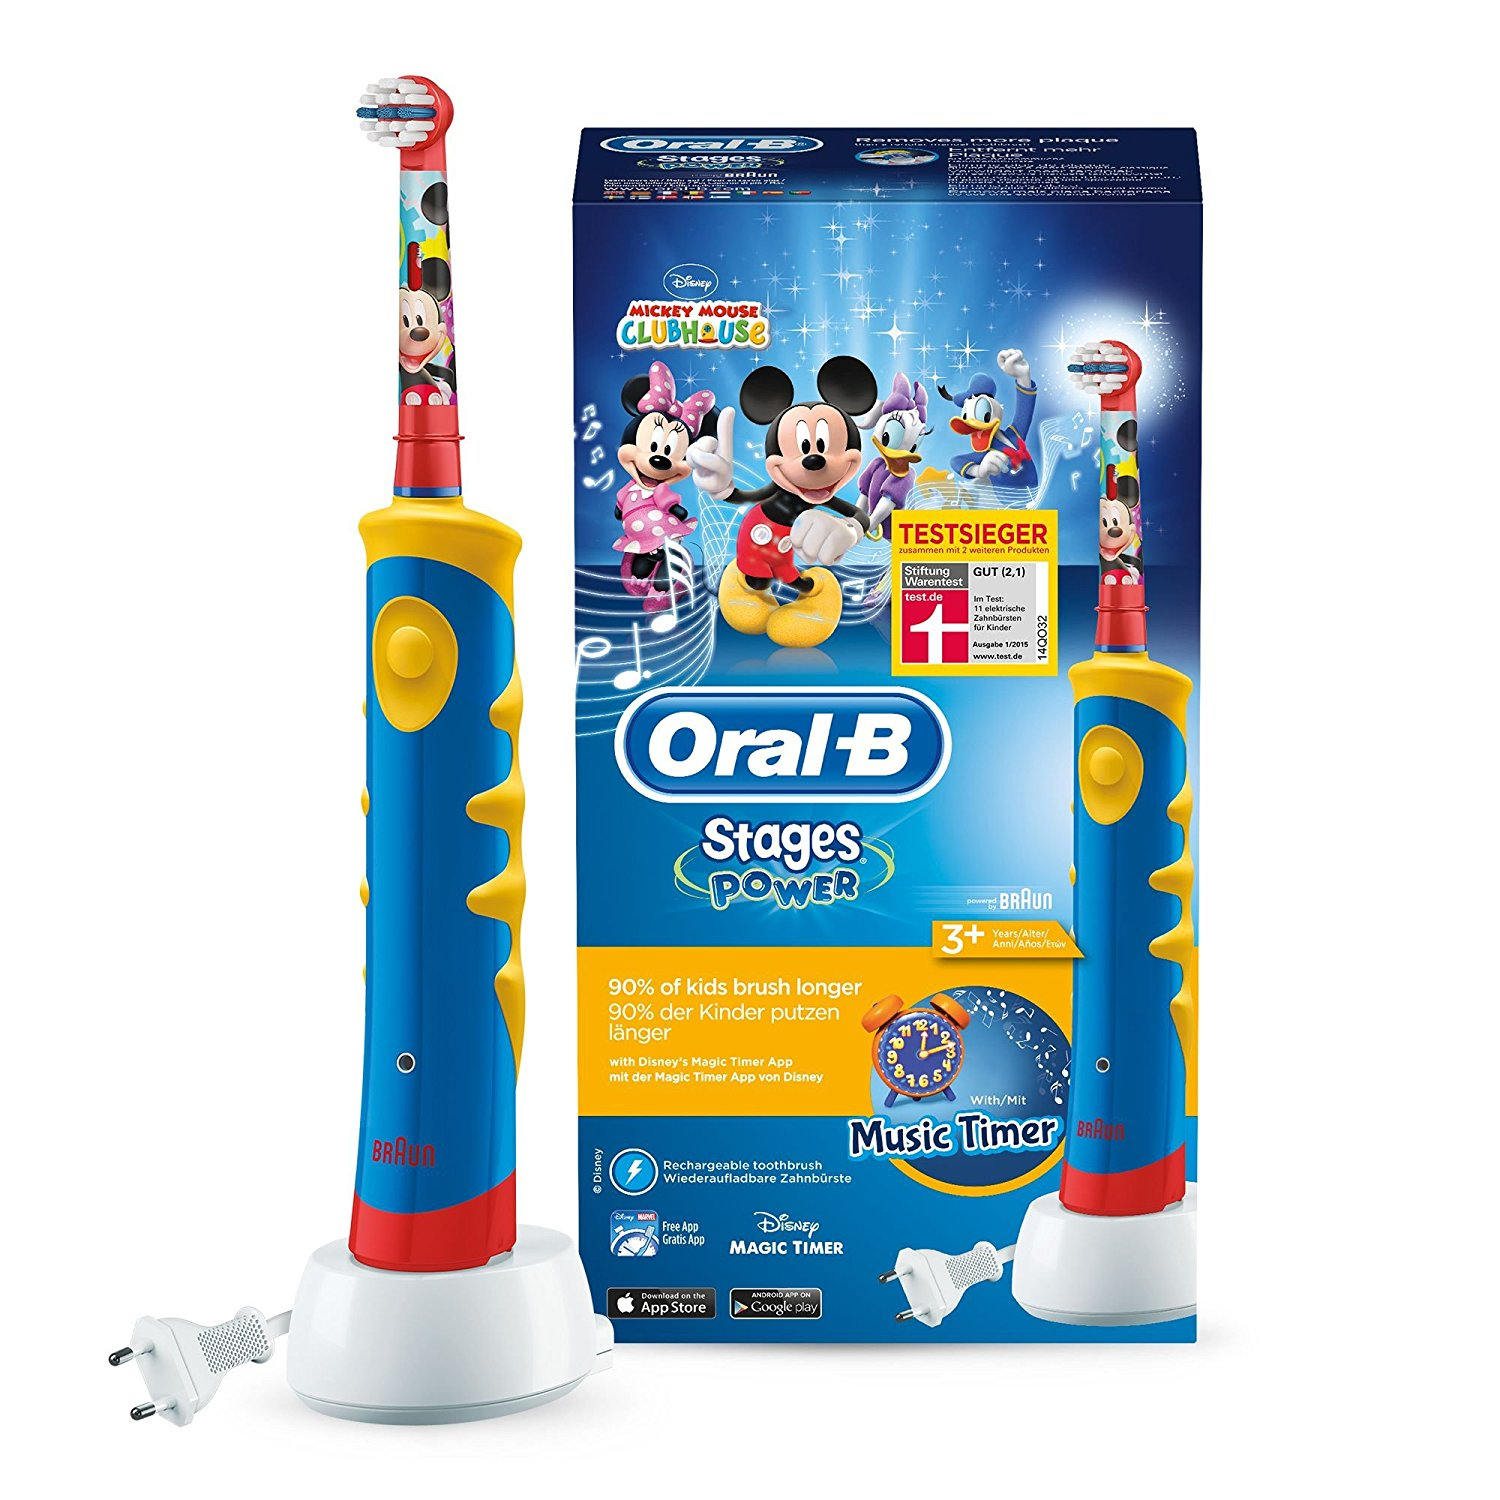 Kinderzahnbürste Oral B Stages Power im Micky Maus Design